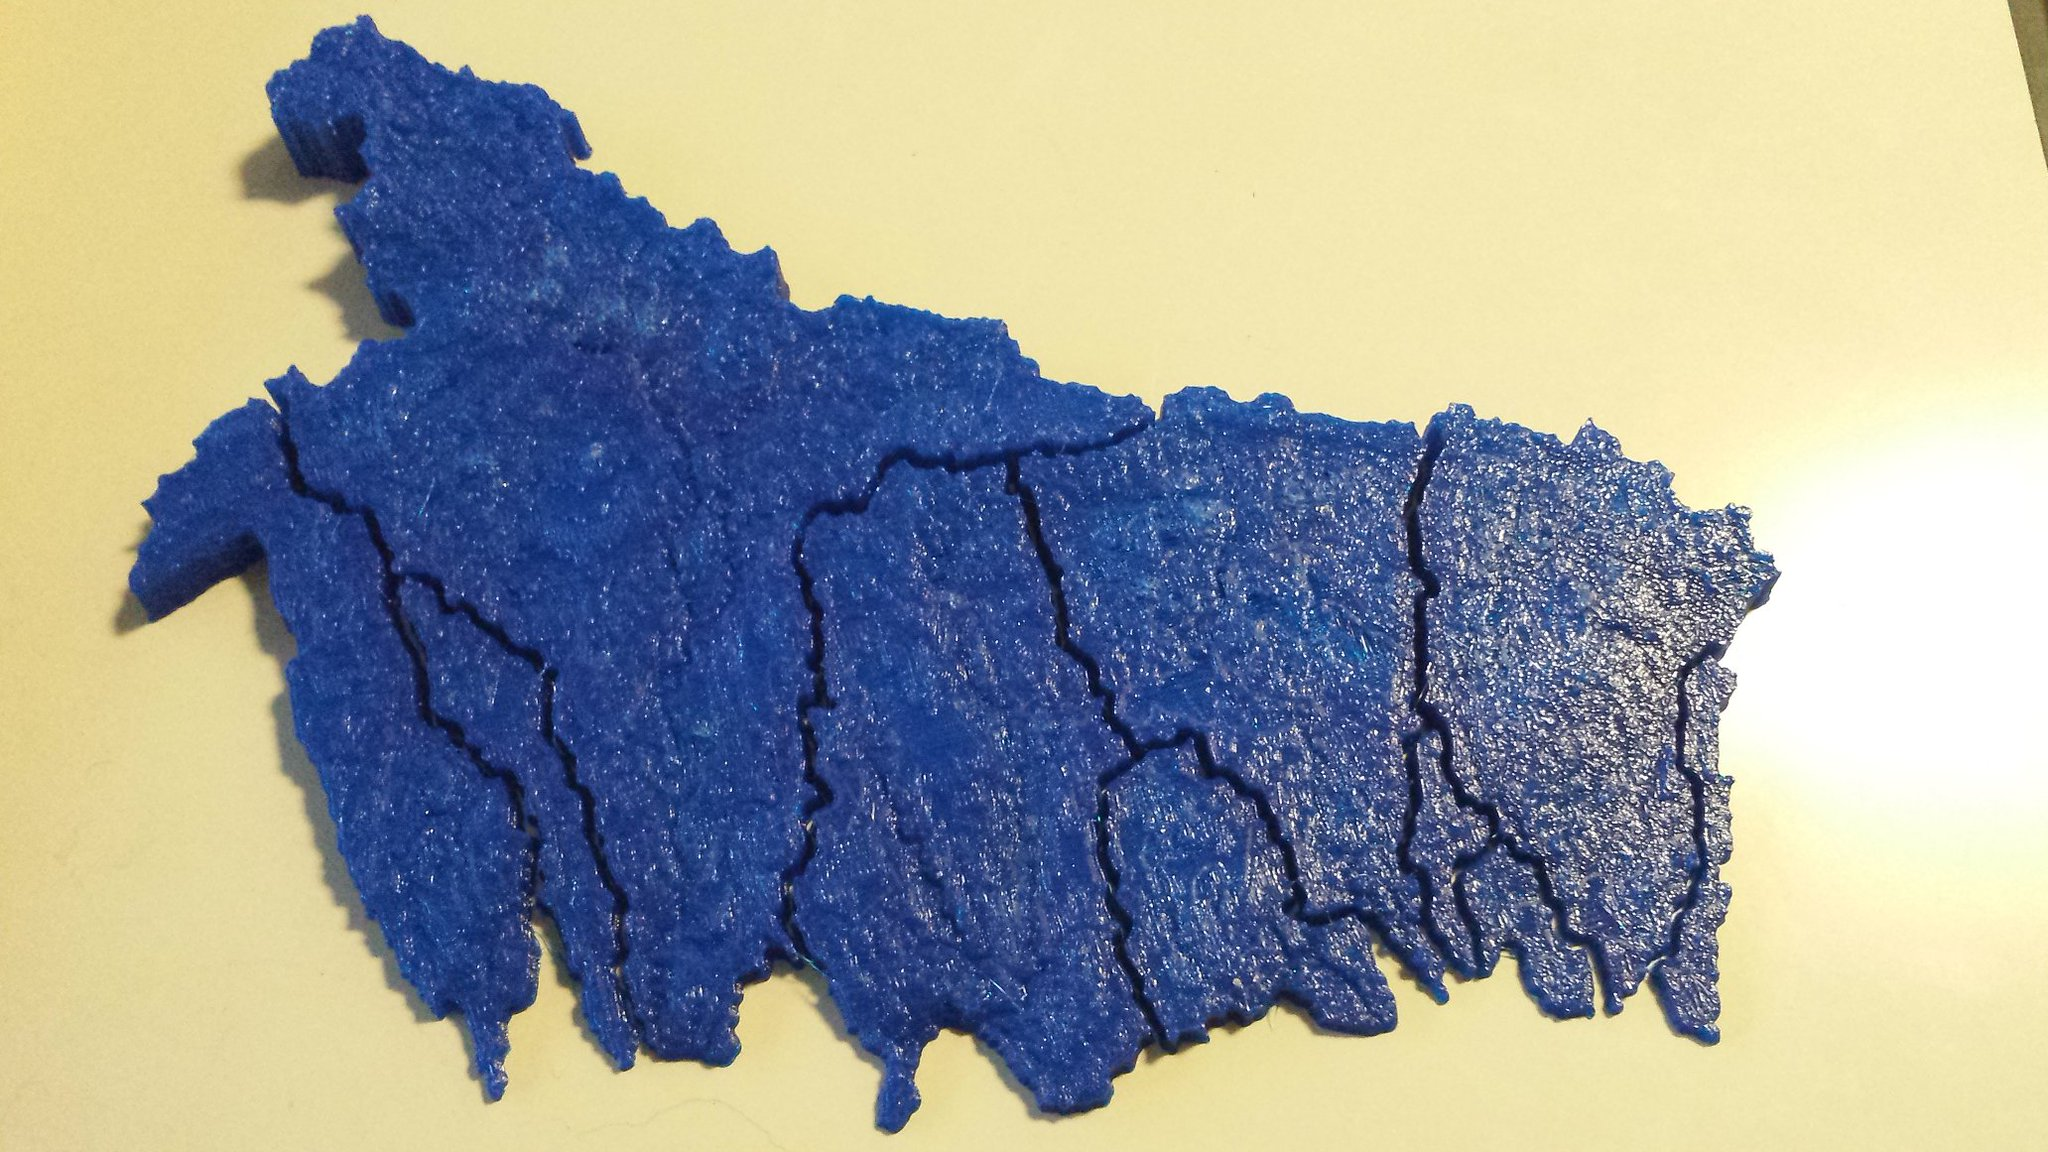 Toronto watershed puzzle. 3D printed by @ClausRinner in @RyersonGeo. @RyUrbanWater @TRCA_Monitoring https://t.co/D8EFXoZmu8